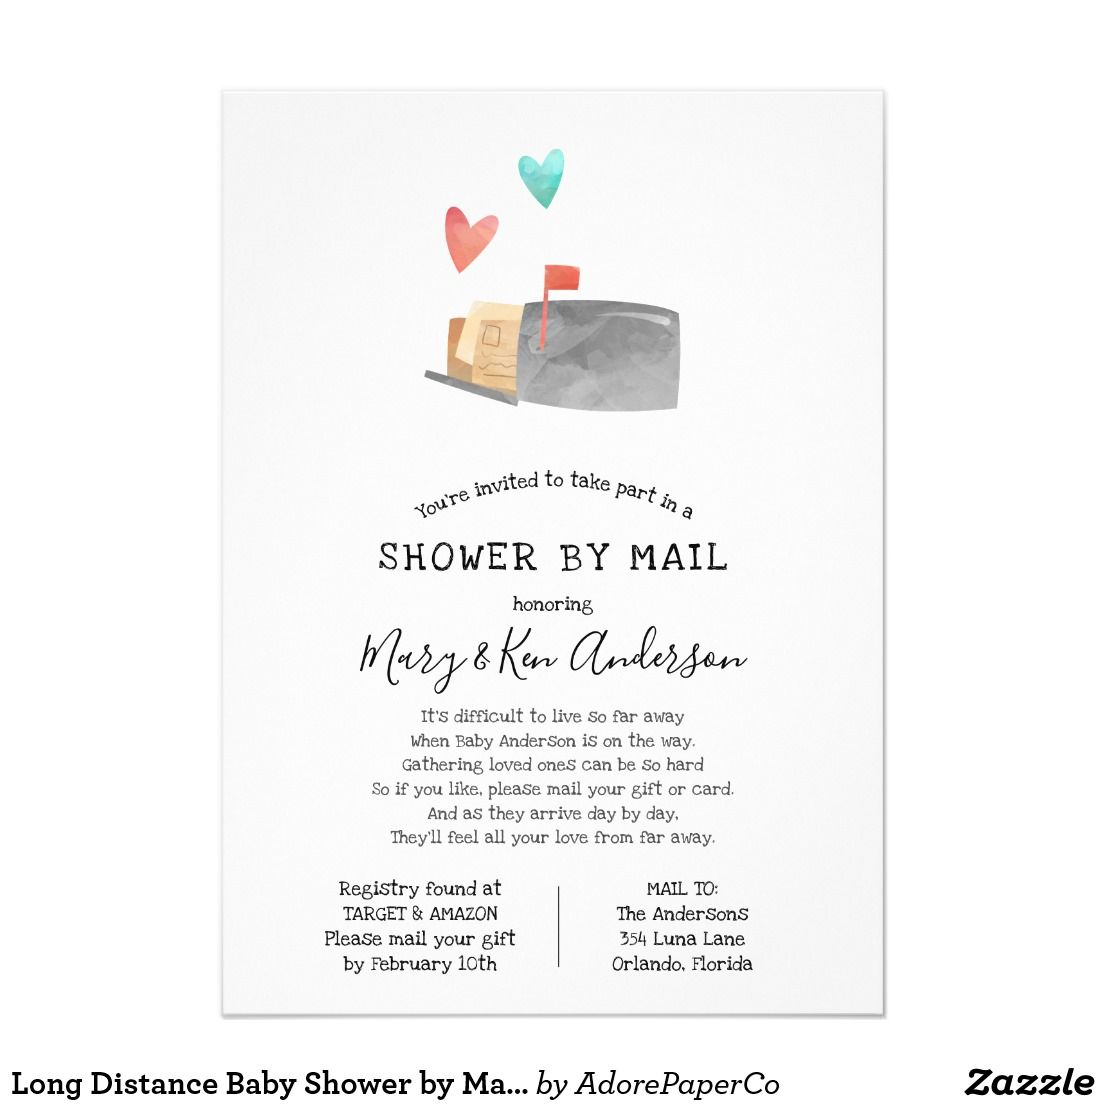 Long Distance Baby Shower By Mail Invitation Zazzle Com Long Distance Baby Shower Virtual Baby Shower Ideas Baby Shower Invitation Cards